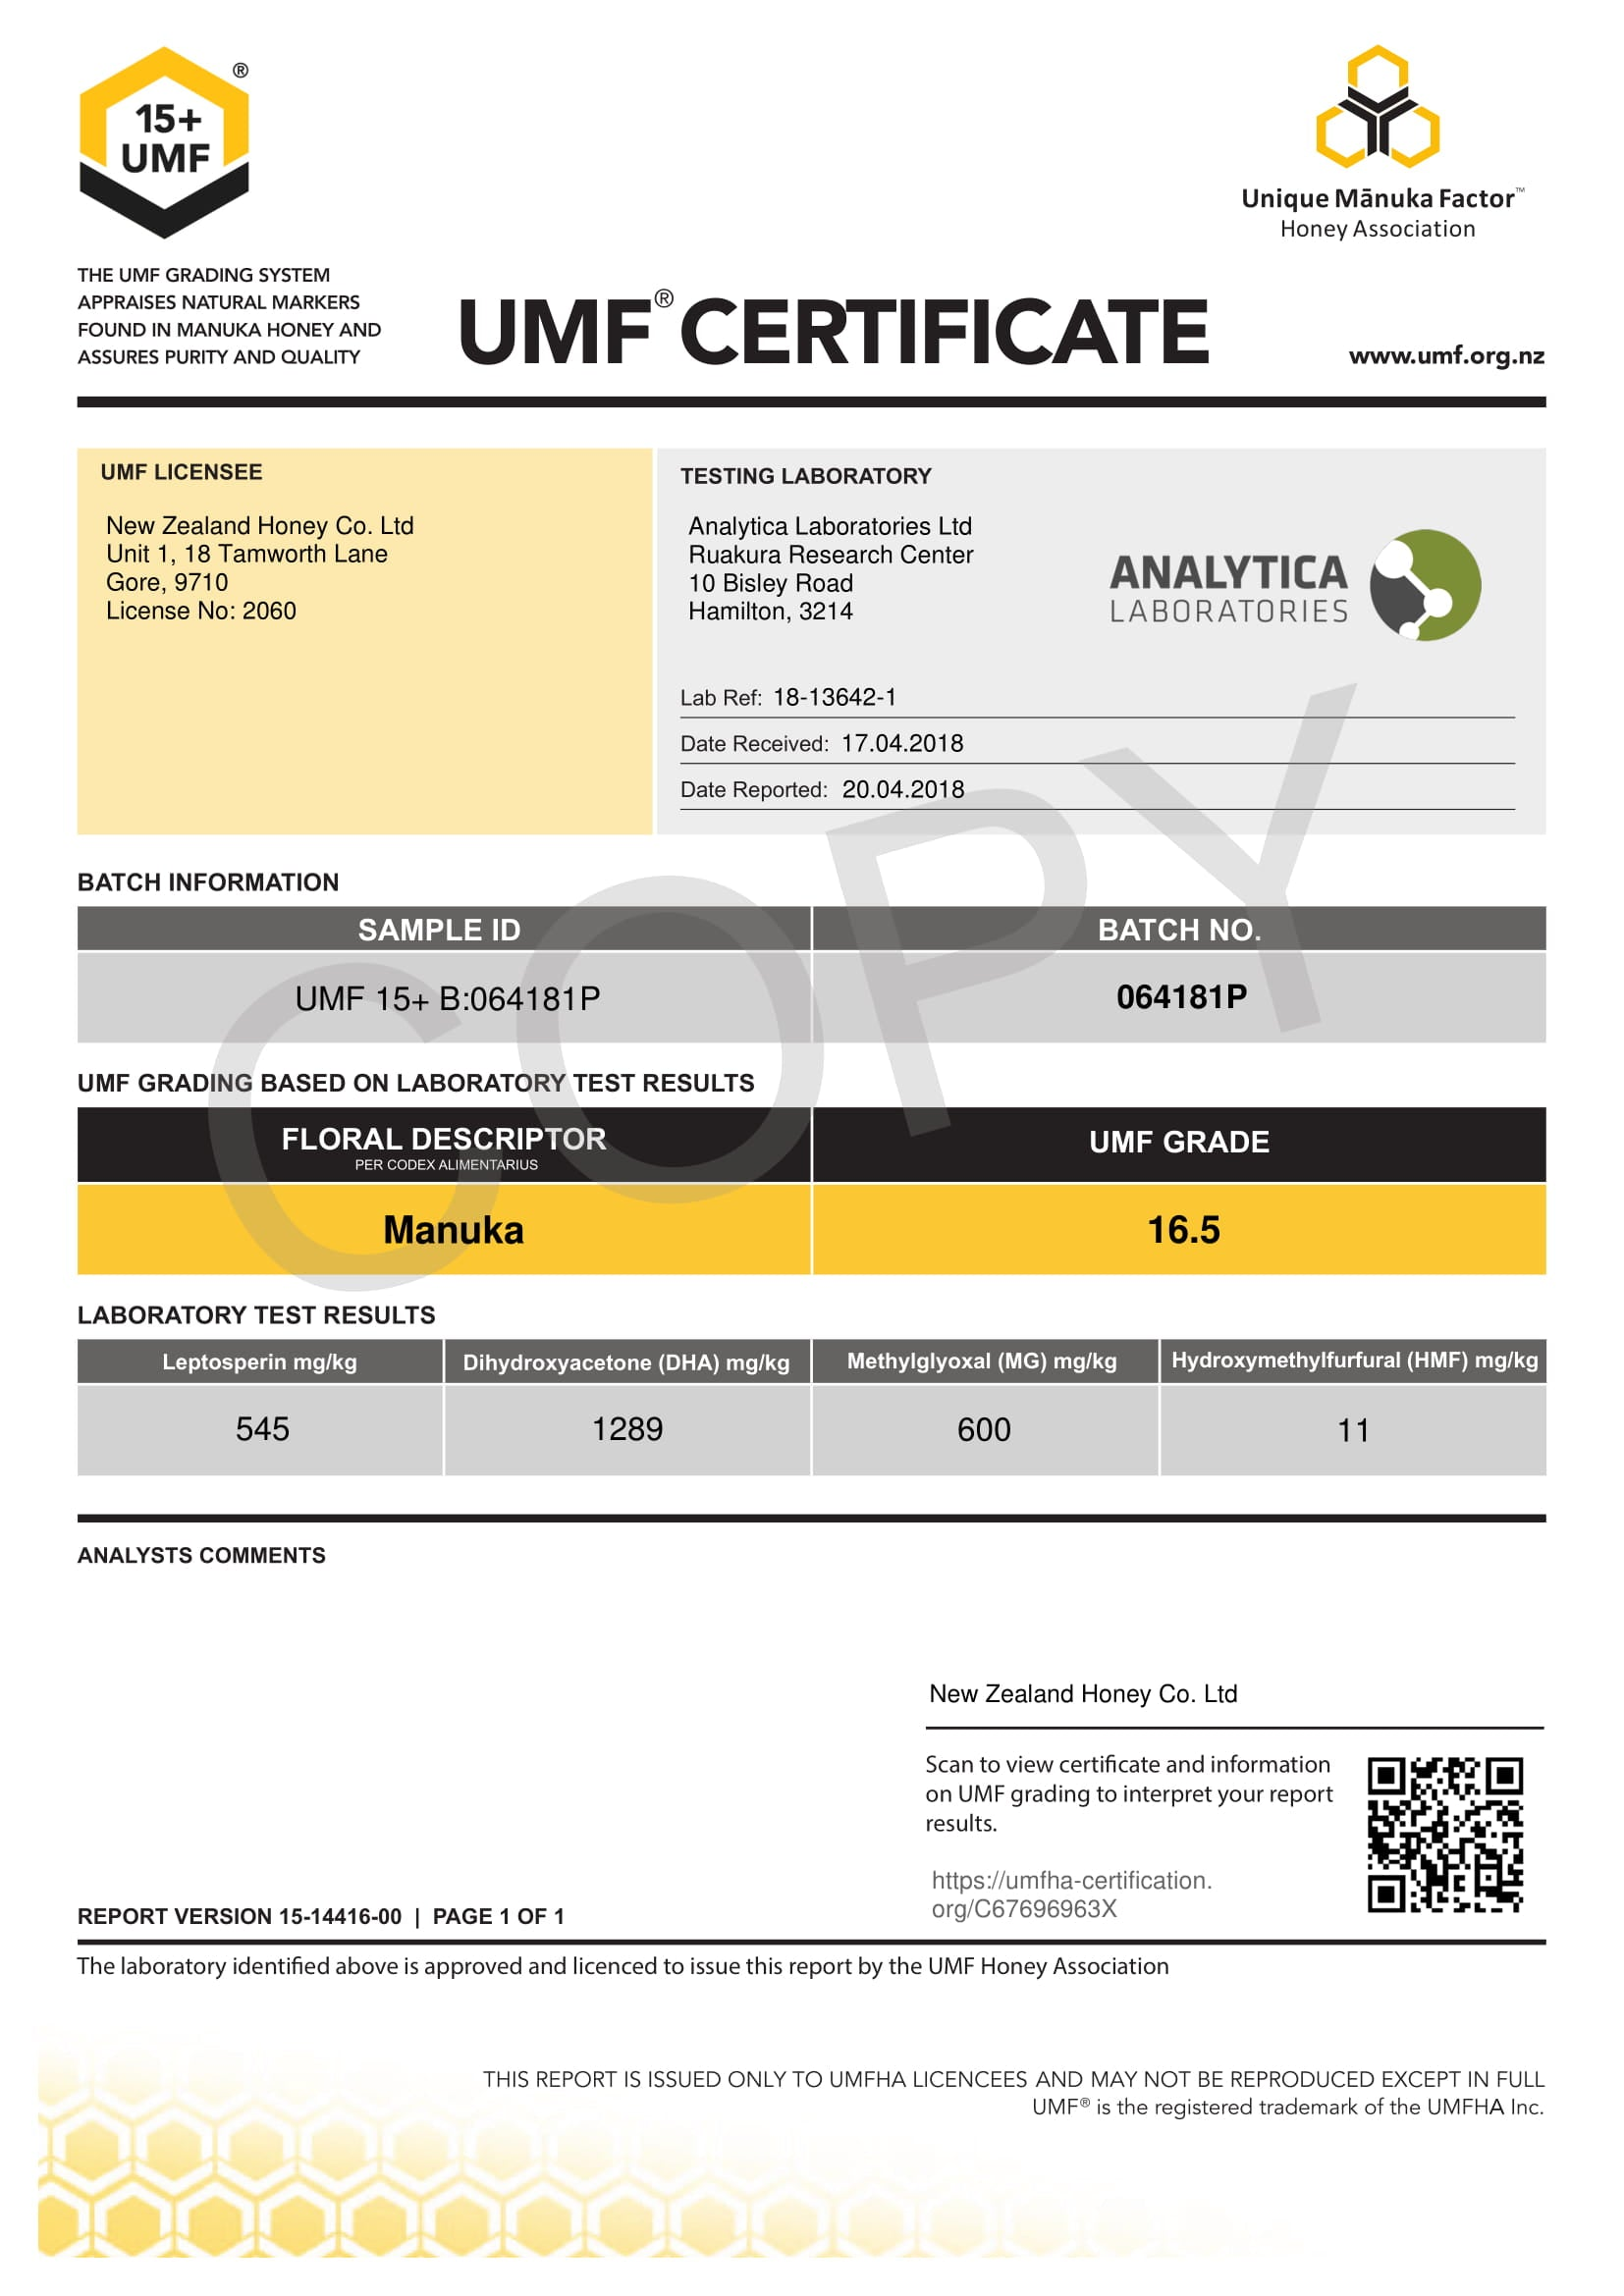 Manuka Honey UMF Certificate for LOT 064181P from New Zealand Honey Co.